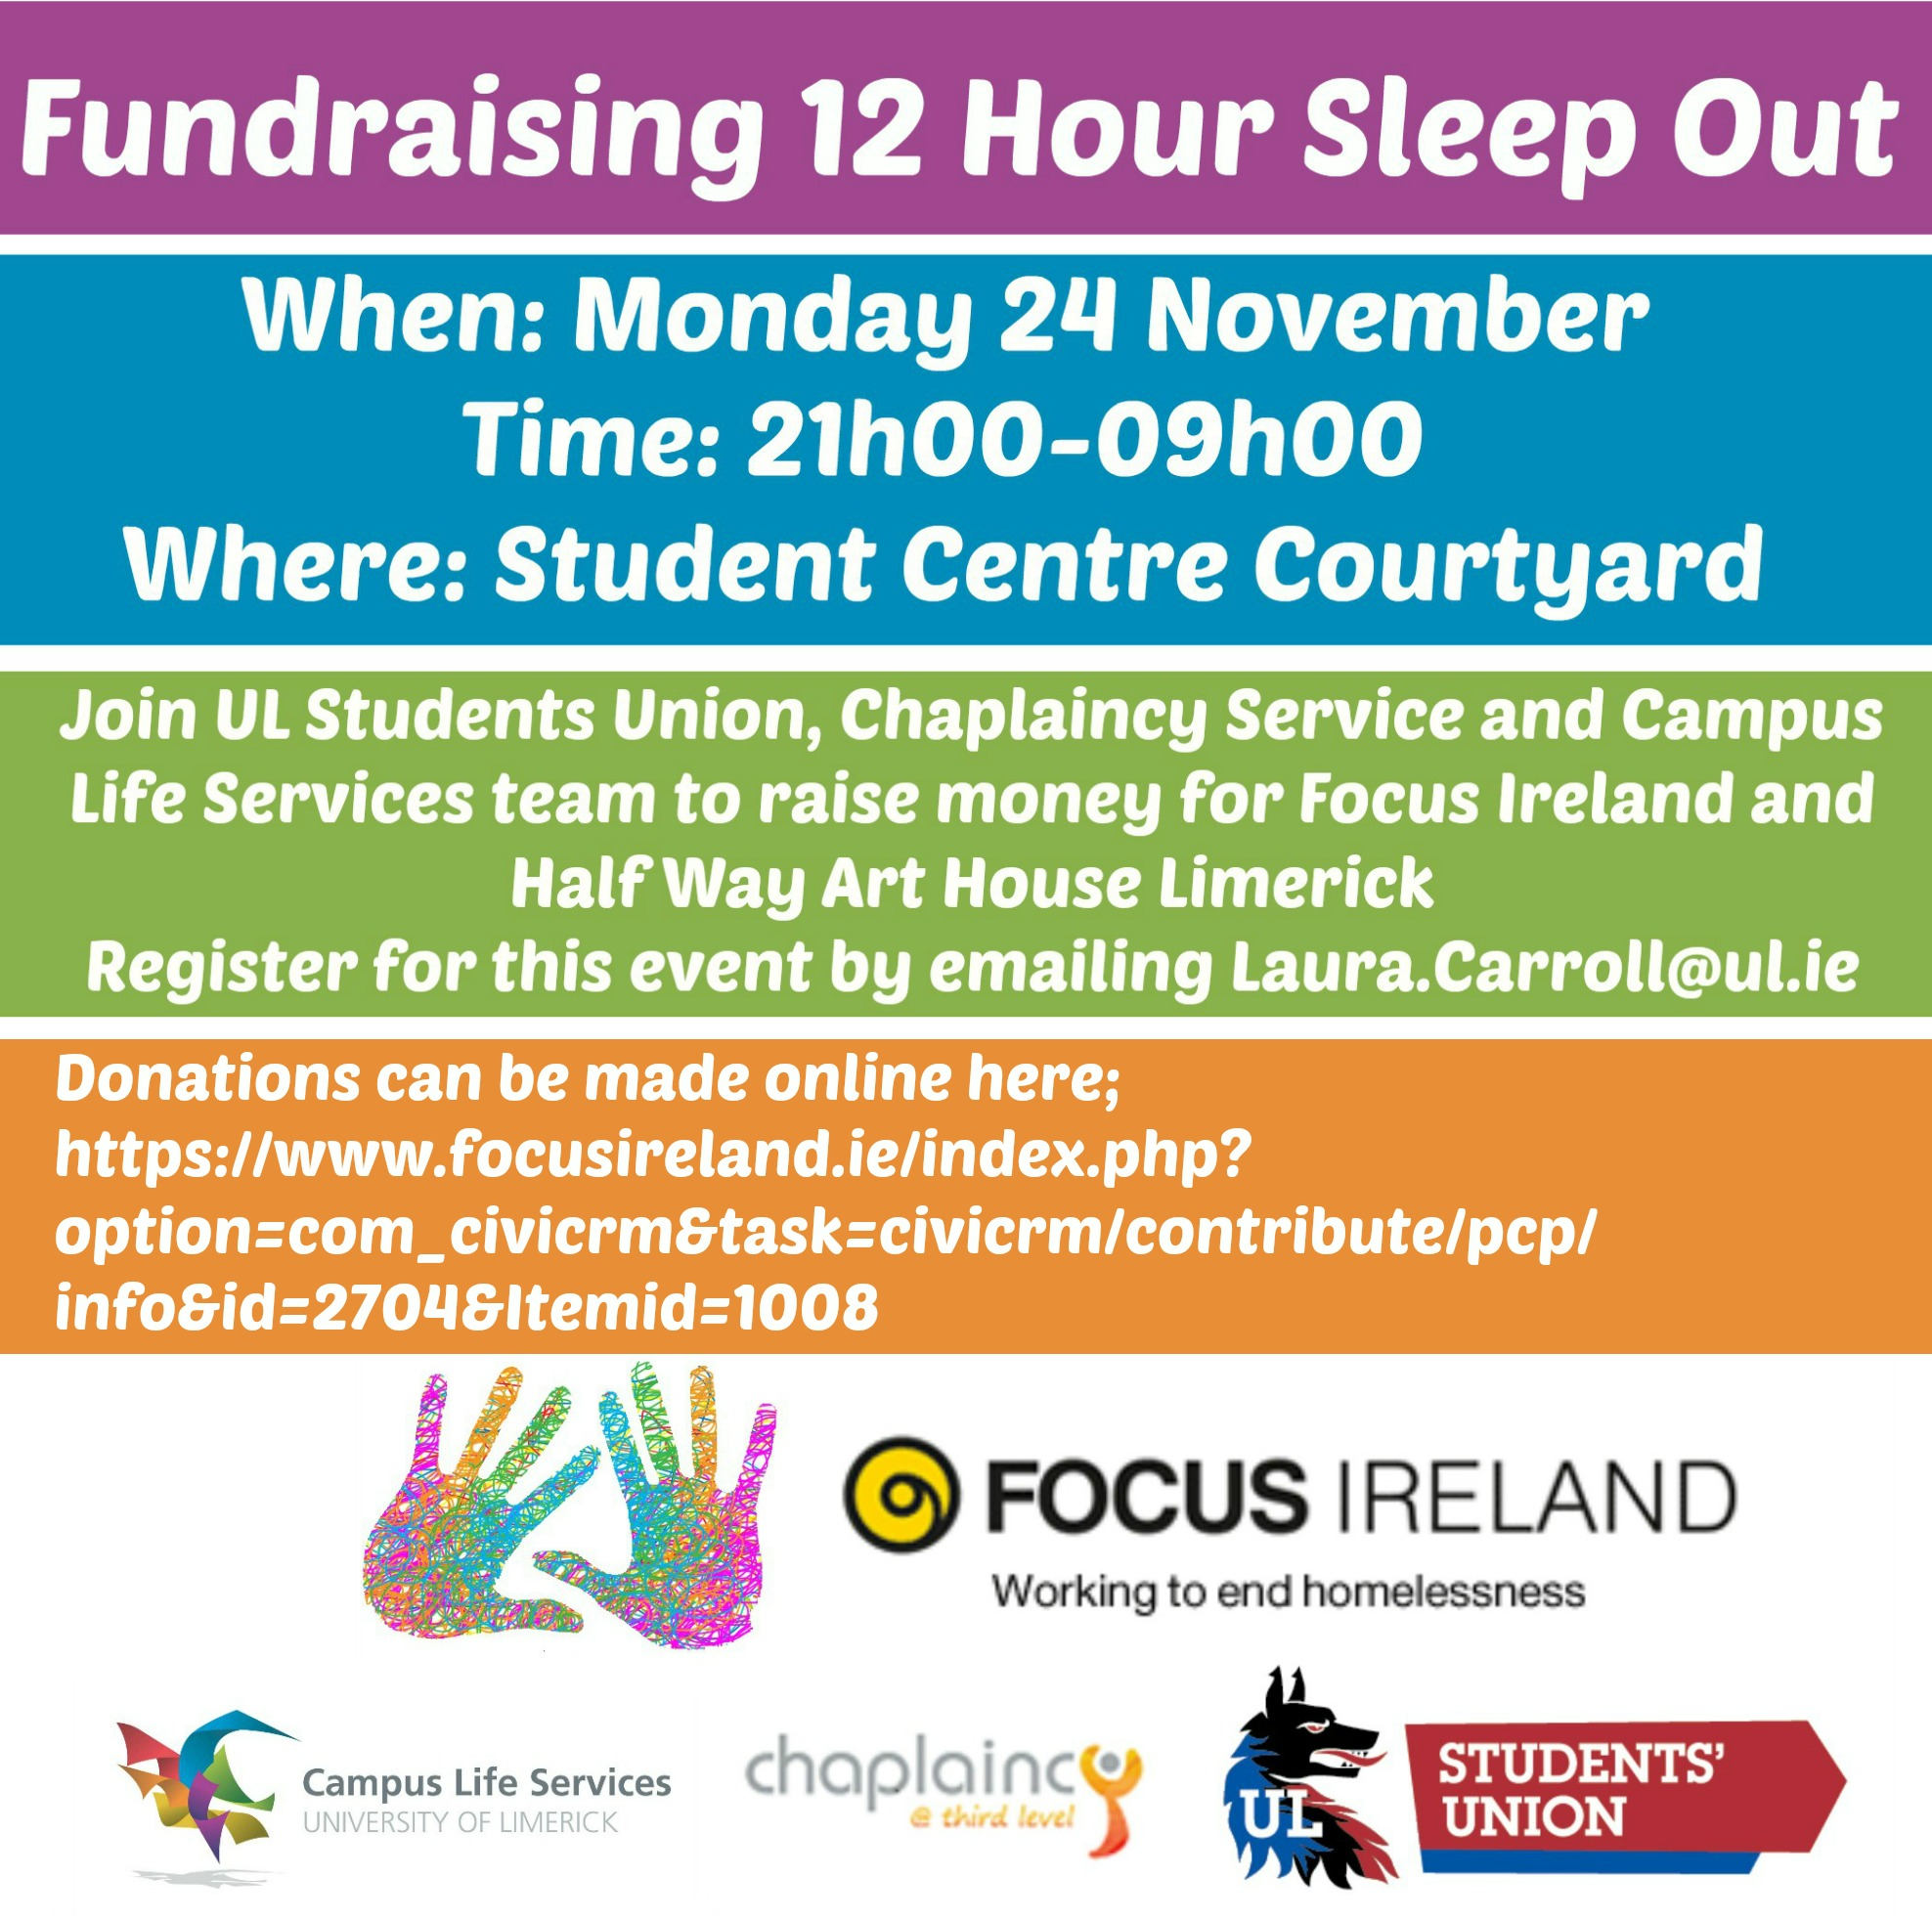 Annual Fundraising 12 Hour Sleep Out!